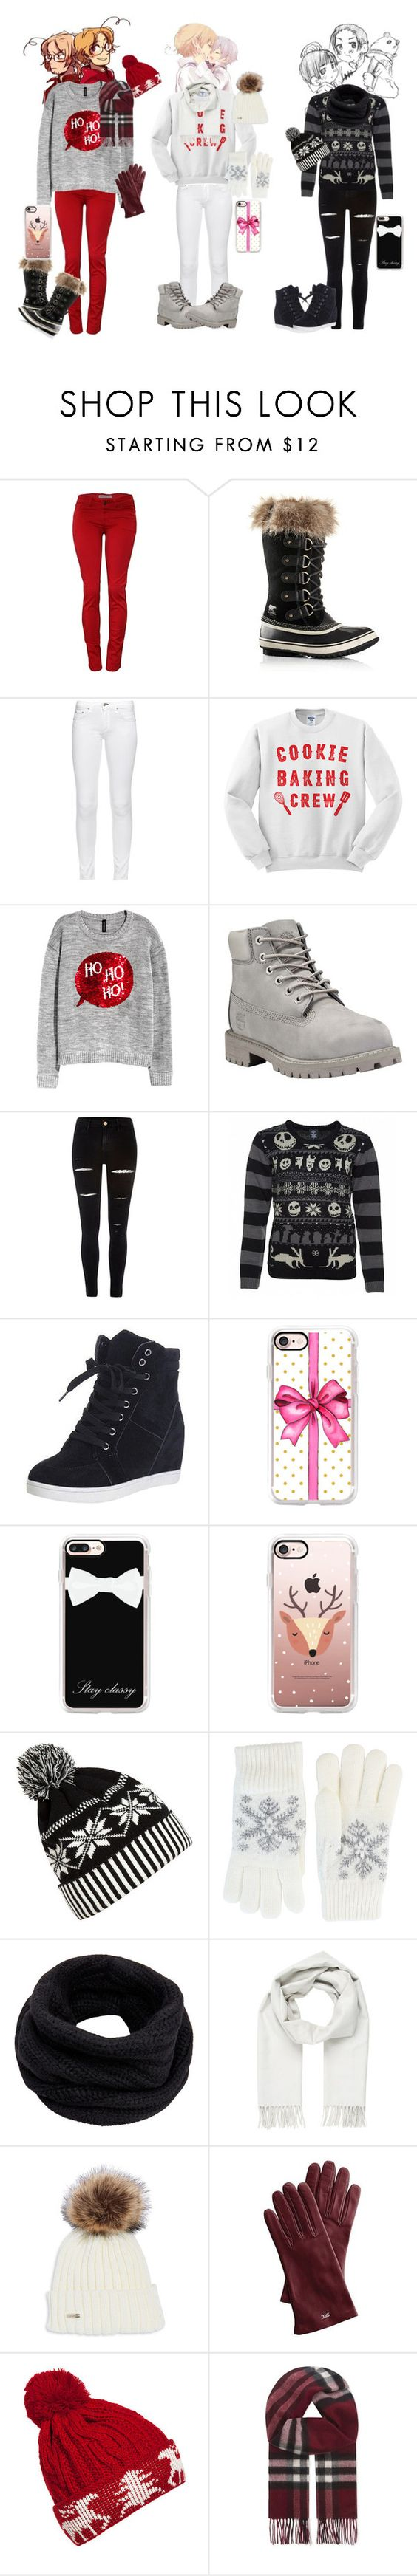 """""""CHRISTMAS HETALIA SHIPS!"""" by rarelee on Polyvore featuring SOREL, rag & bone, H&M, Timberland, River Island, Casetify, WithChic, Fits, Helmut Lang and Brioni"""